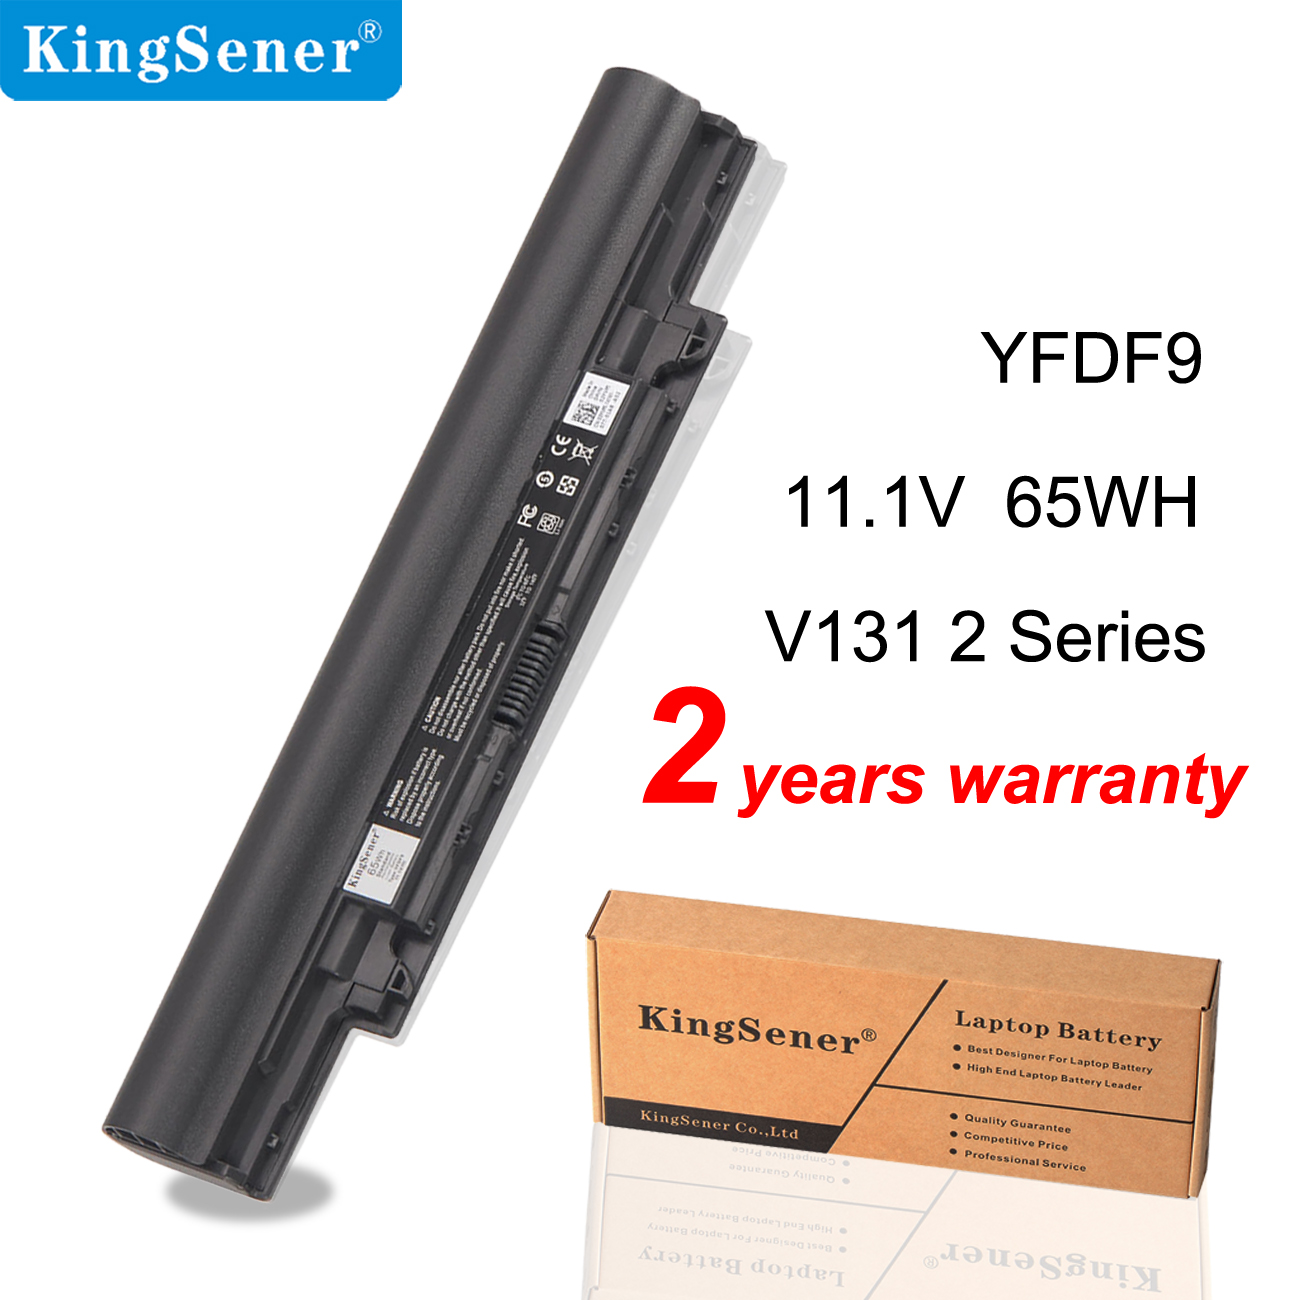 KingSener New YFDF9 Laptop Battery For DELL Latitude 3340 3350 V131 2 Series JR6XC 5MTD8 YFOF9 HGJW8 VDYR8 7WV3V H4PJP 65WH